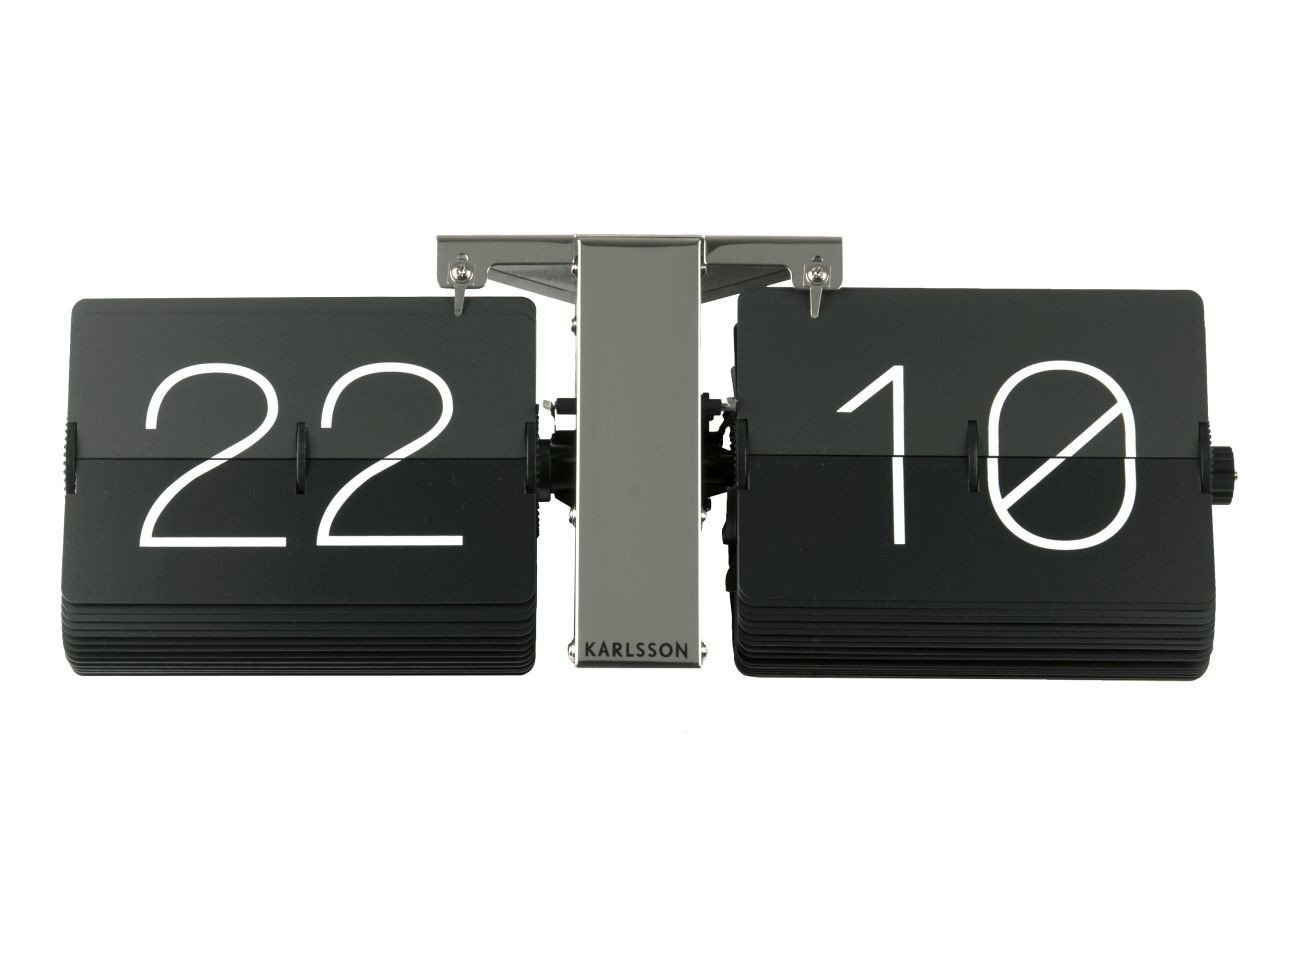 Karlsson Flip Clock with Chrome Stand without Case, Steel, Black